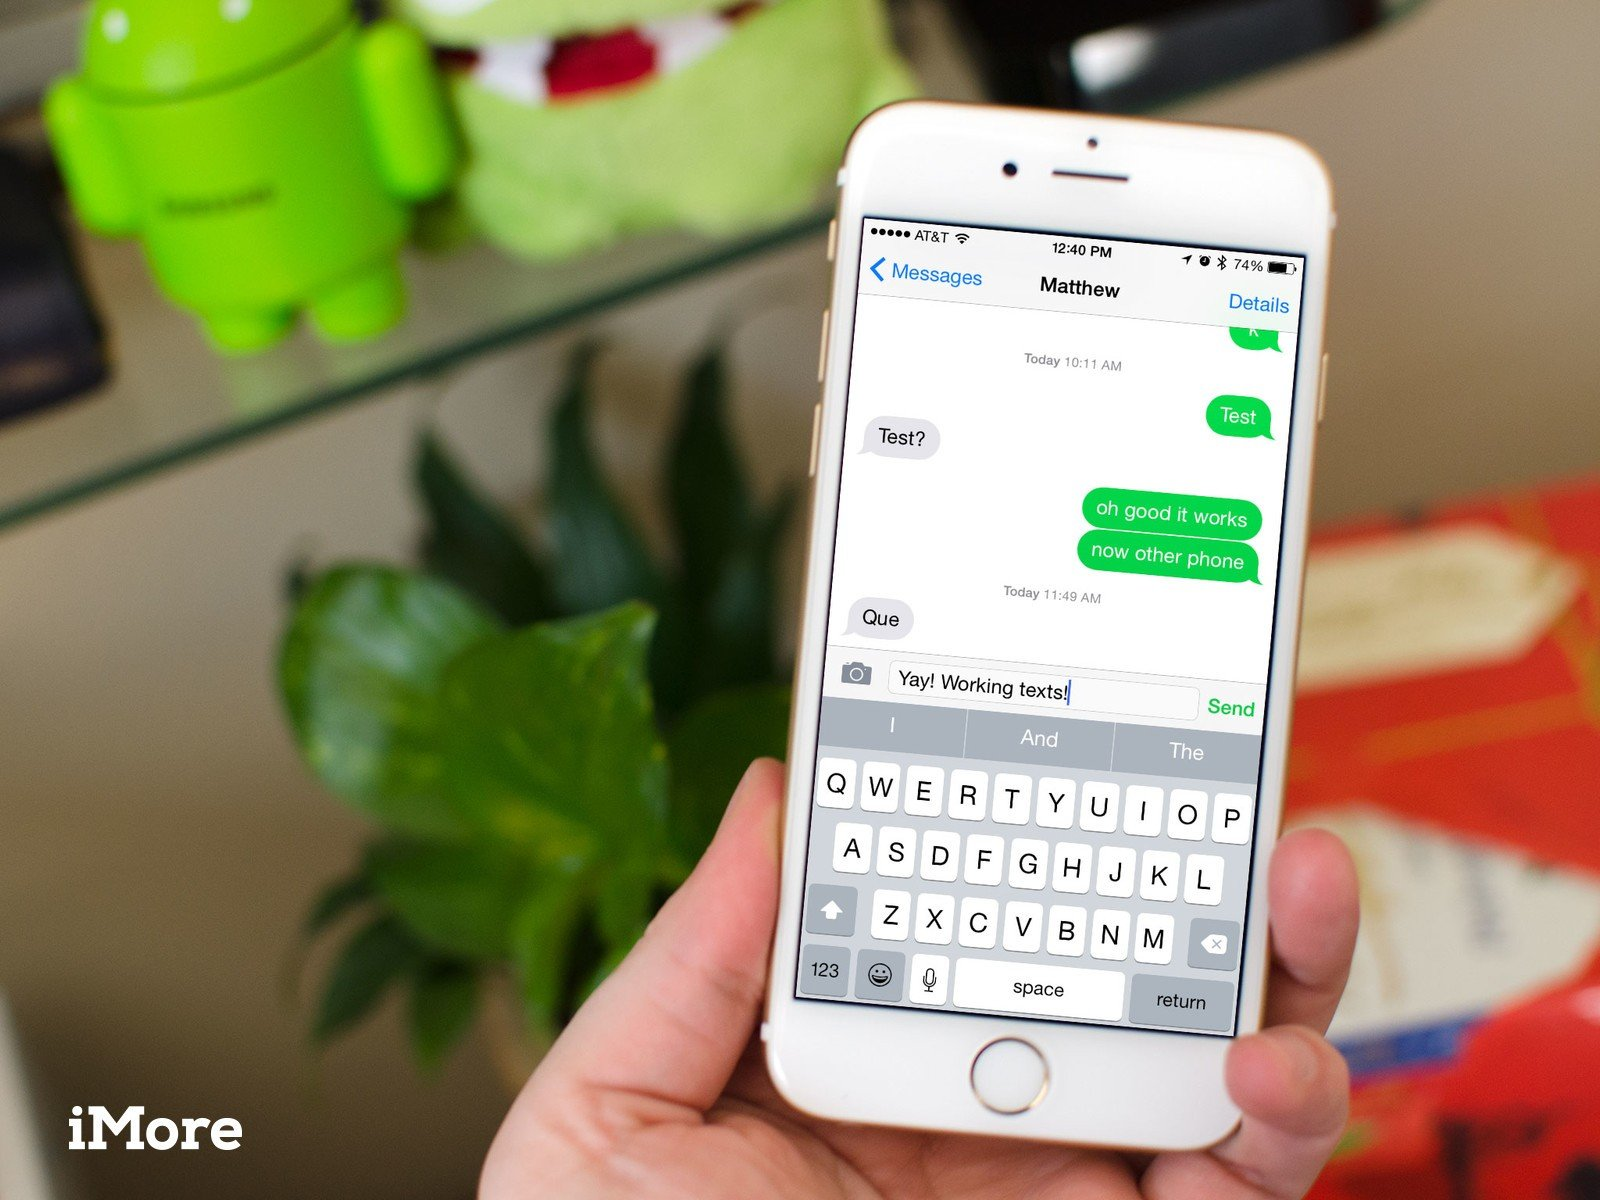 Why can't I send regular text messages on my iPhone 6 or 6 Plus?